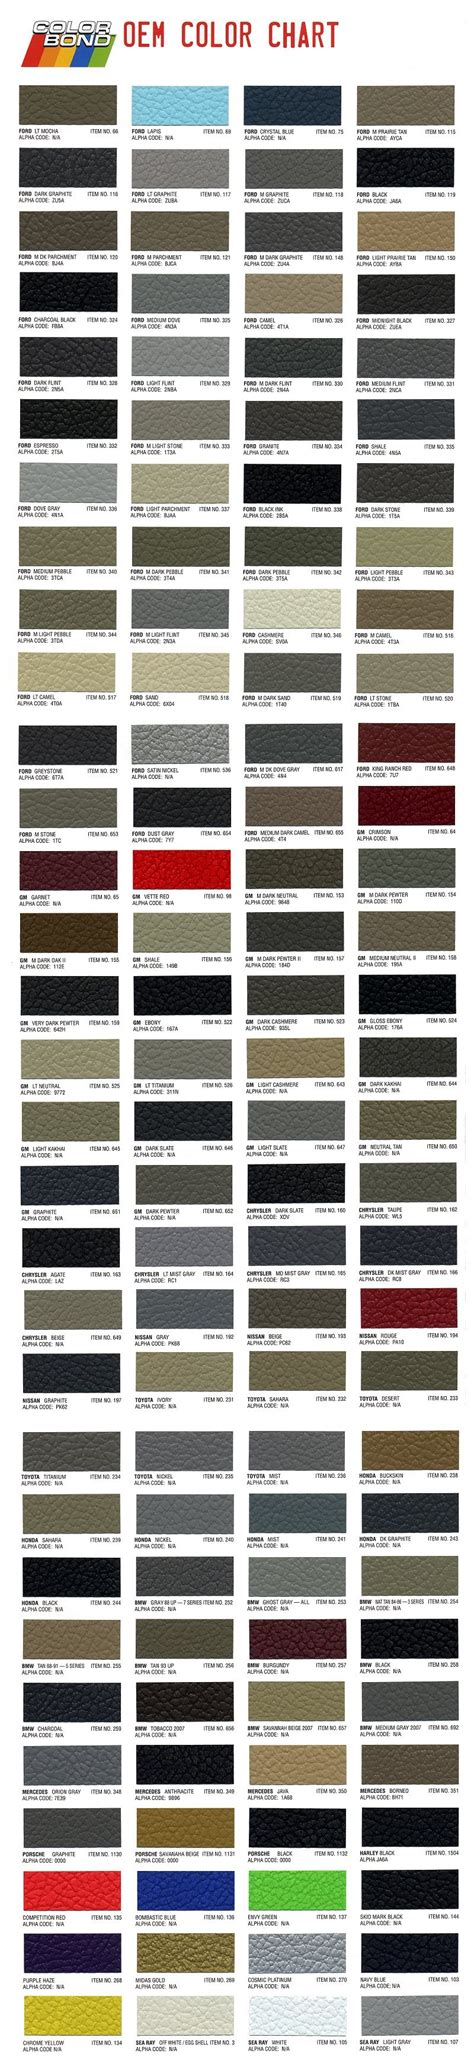 dupli color perfectmatch color chart motorcycle review and galleries